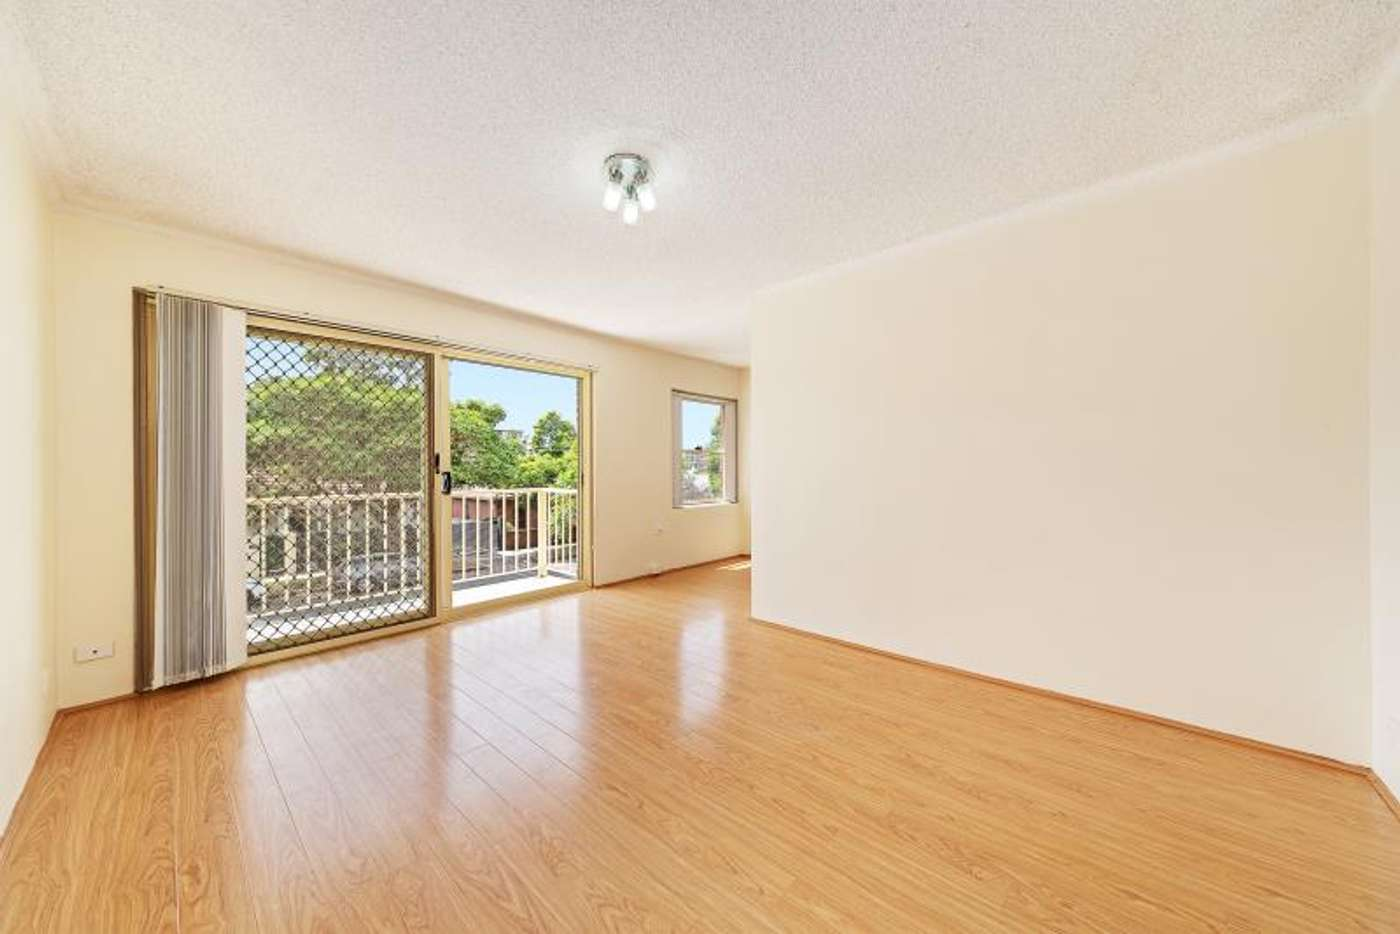 Main view of Homely apartment listing, 1/54 Botany Street, Randwick NSW 2031